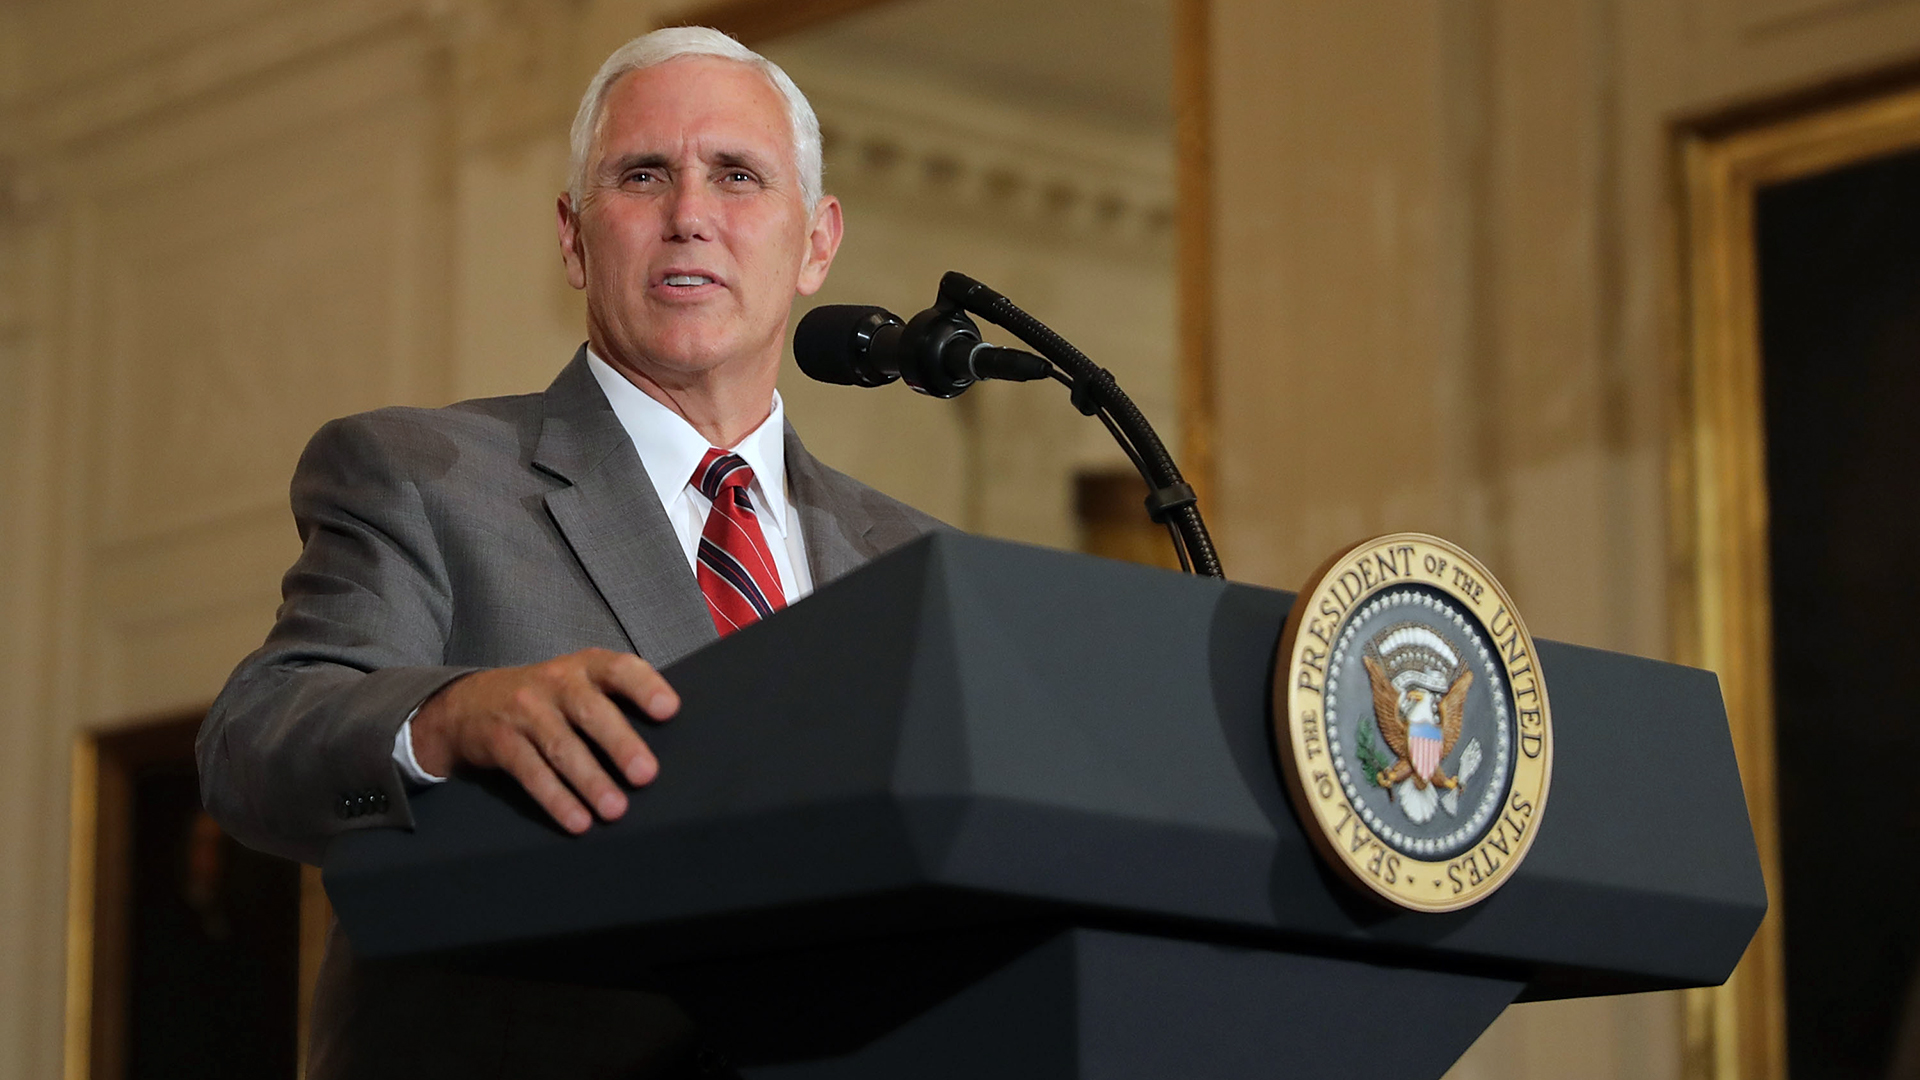 Mike Pence at White House podium-159532.jpg47907479